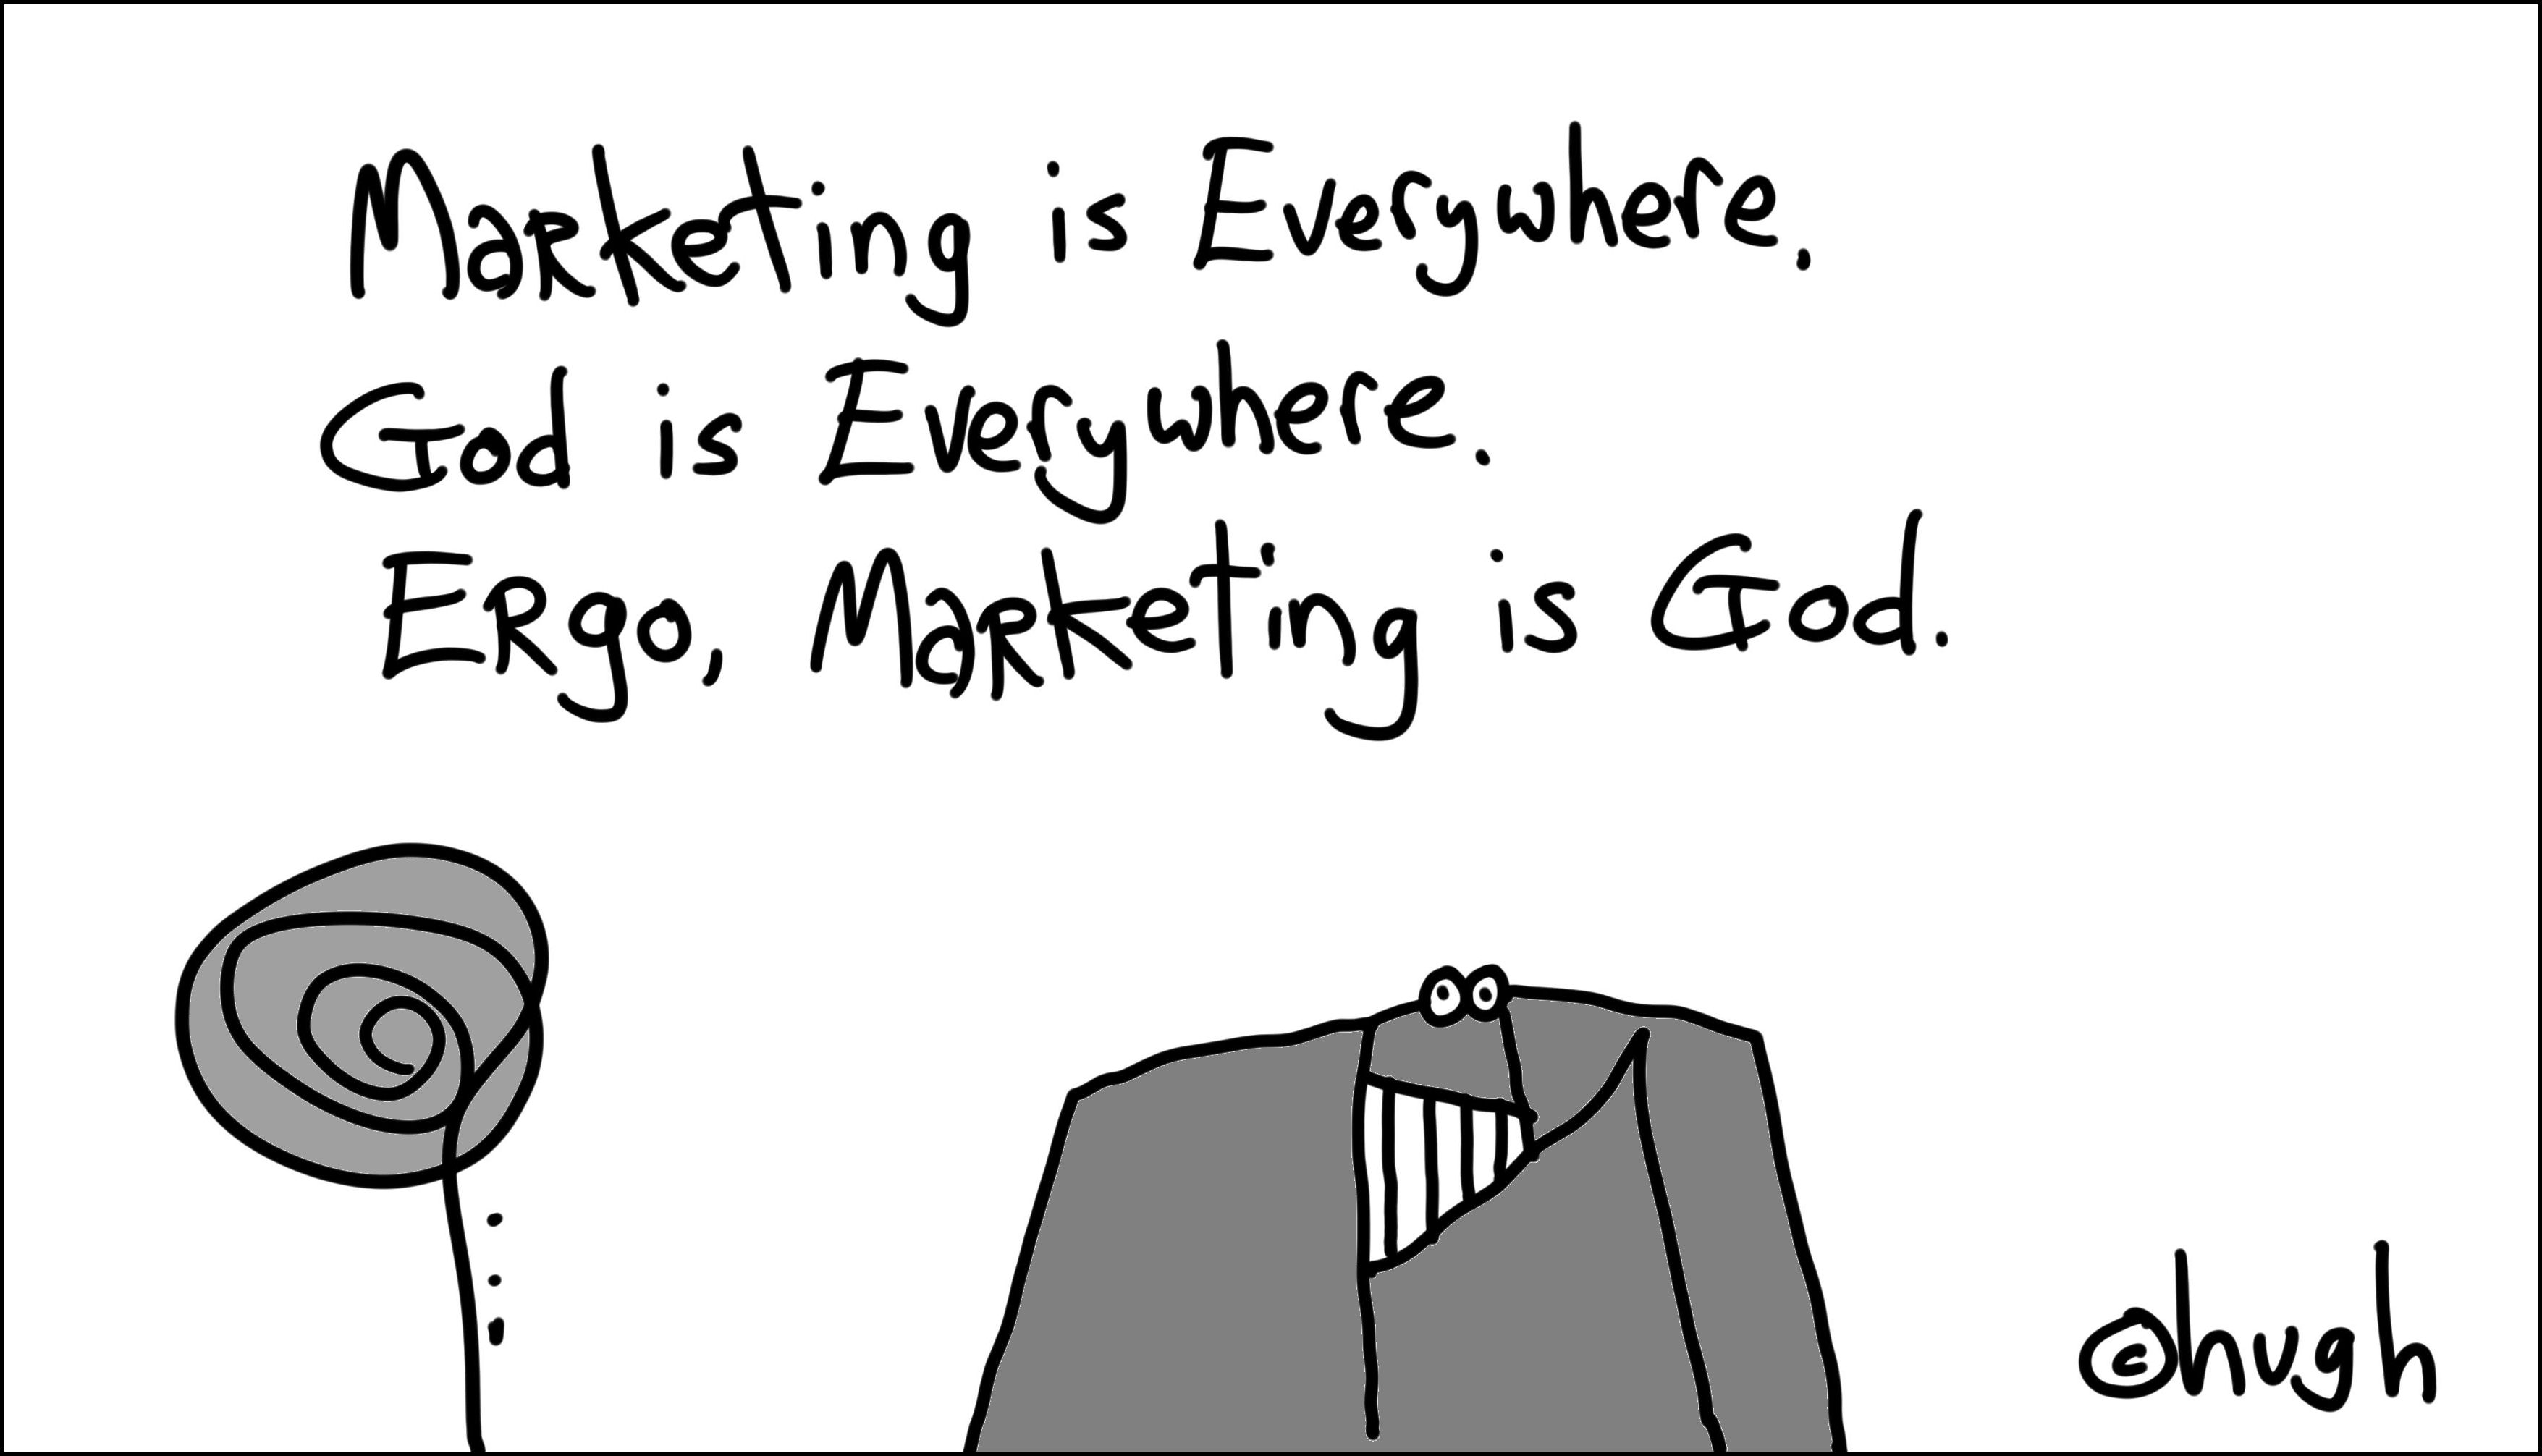 marketing-is-god.jpg